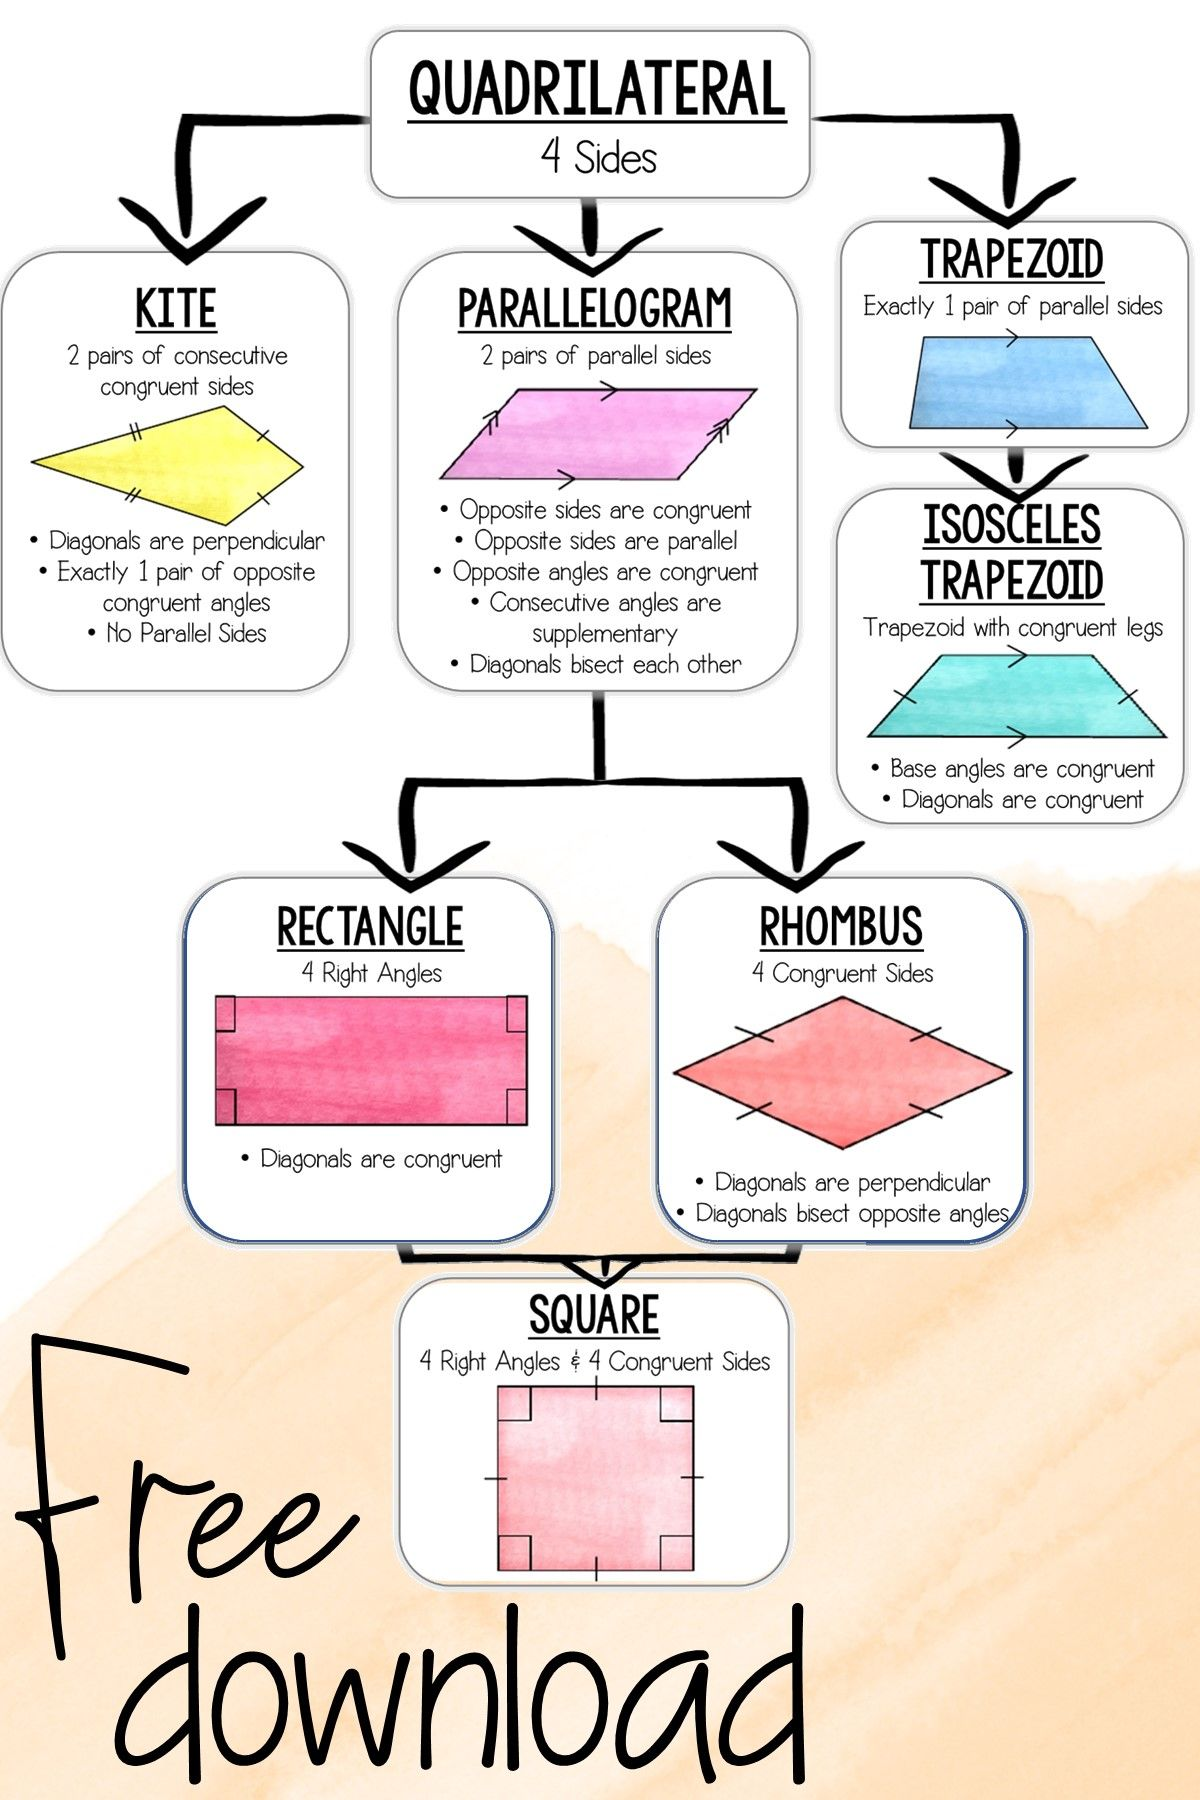 small resolution of Quadrilateral Theorems and Classifying Quadrilaterals Anchor Chart / Poster    Quadrilaterals anchor chart